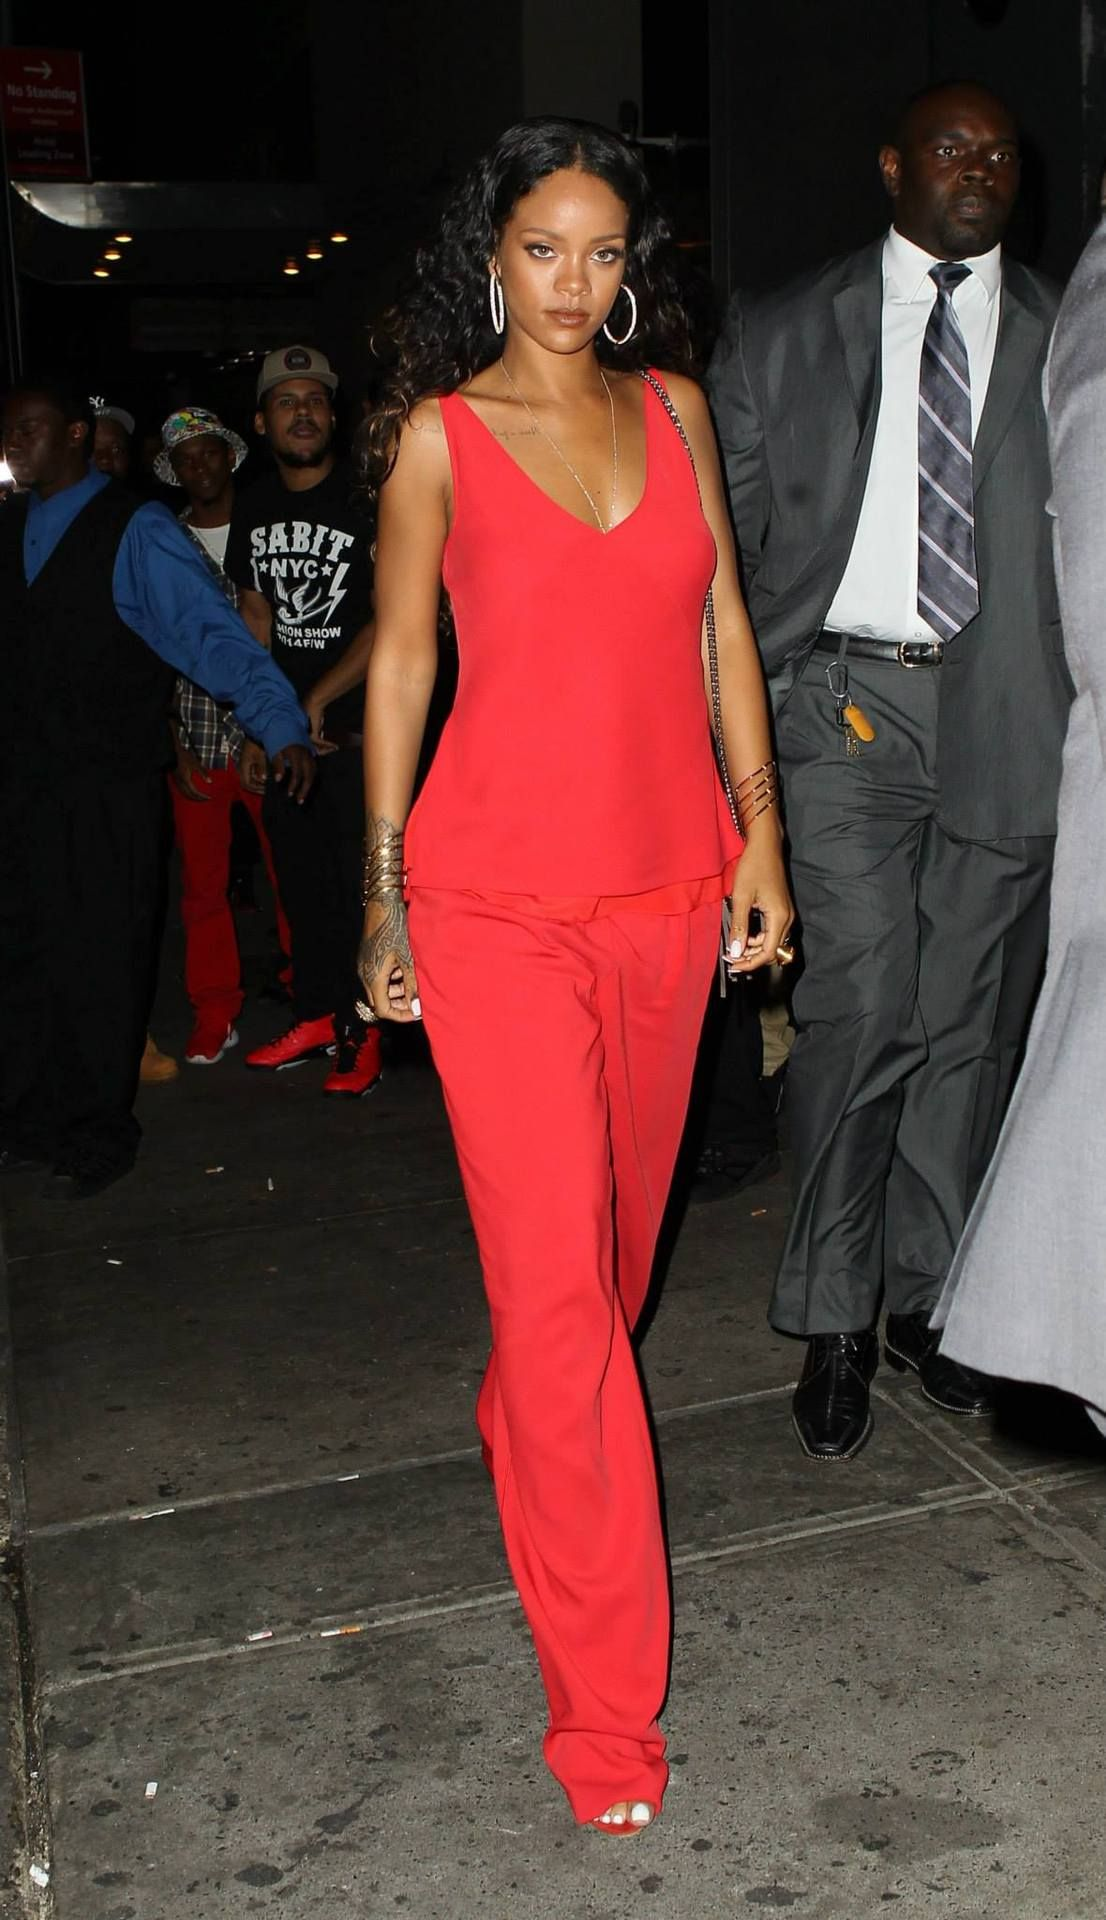 Rihanna arriving at a Party in New York